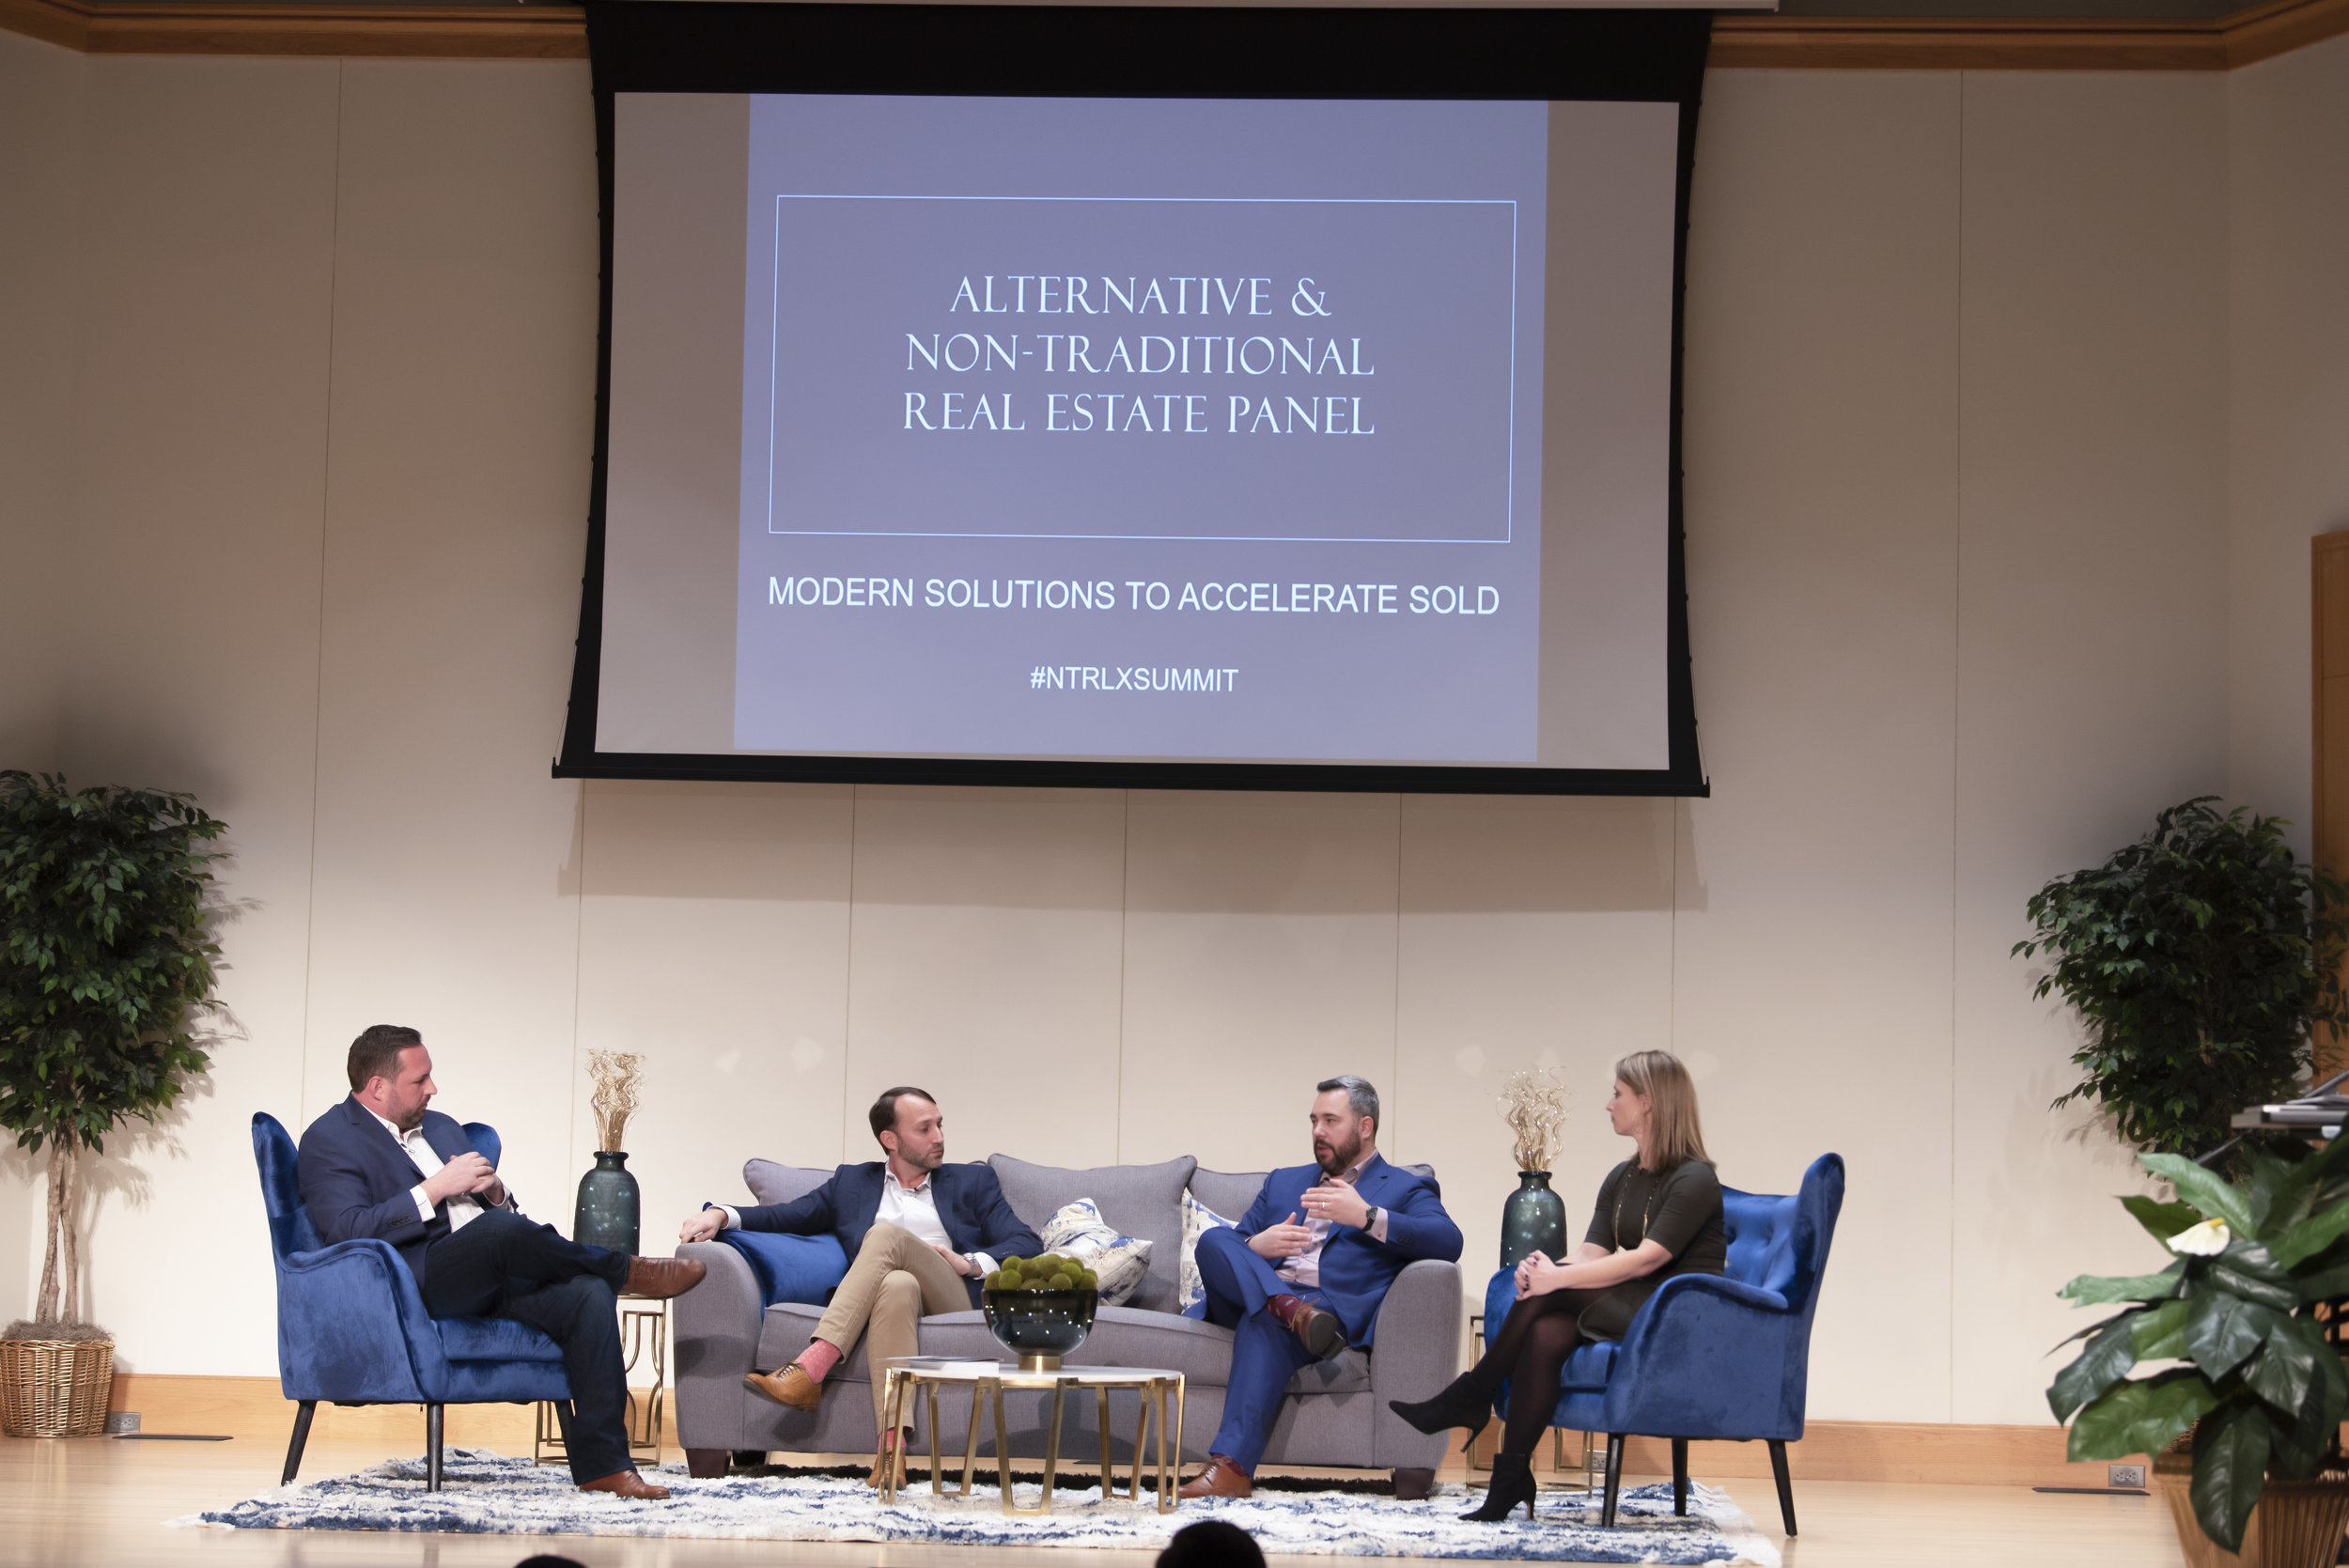 Alternative Real Estate Panel: Modern Solutions to Accelerate Sold